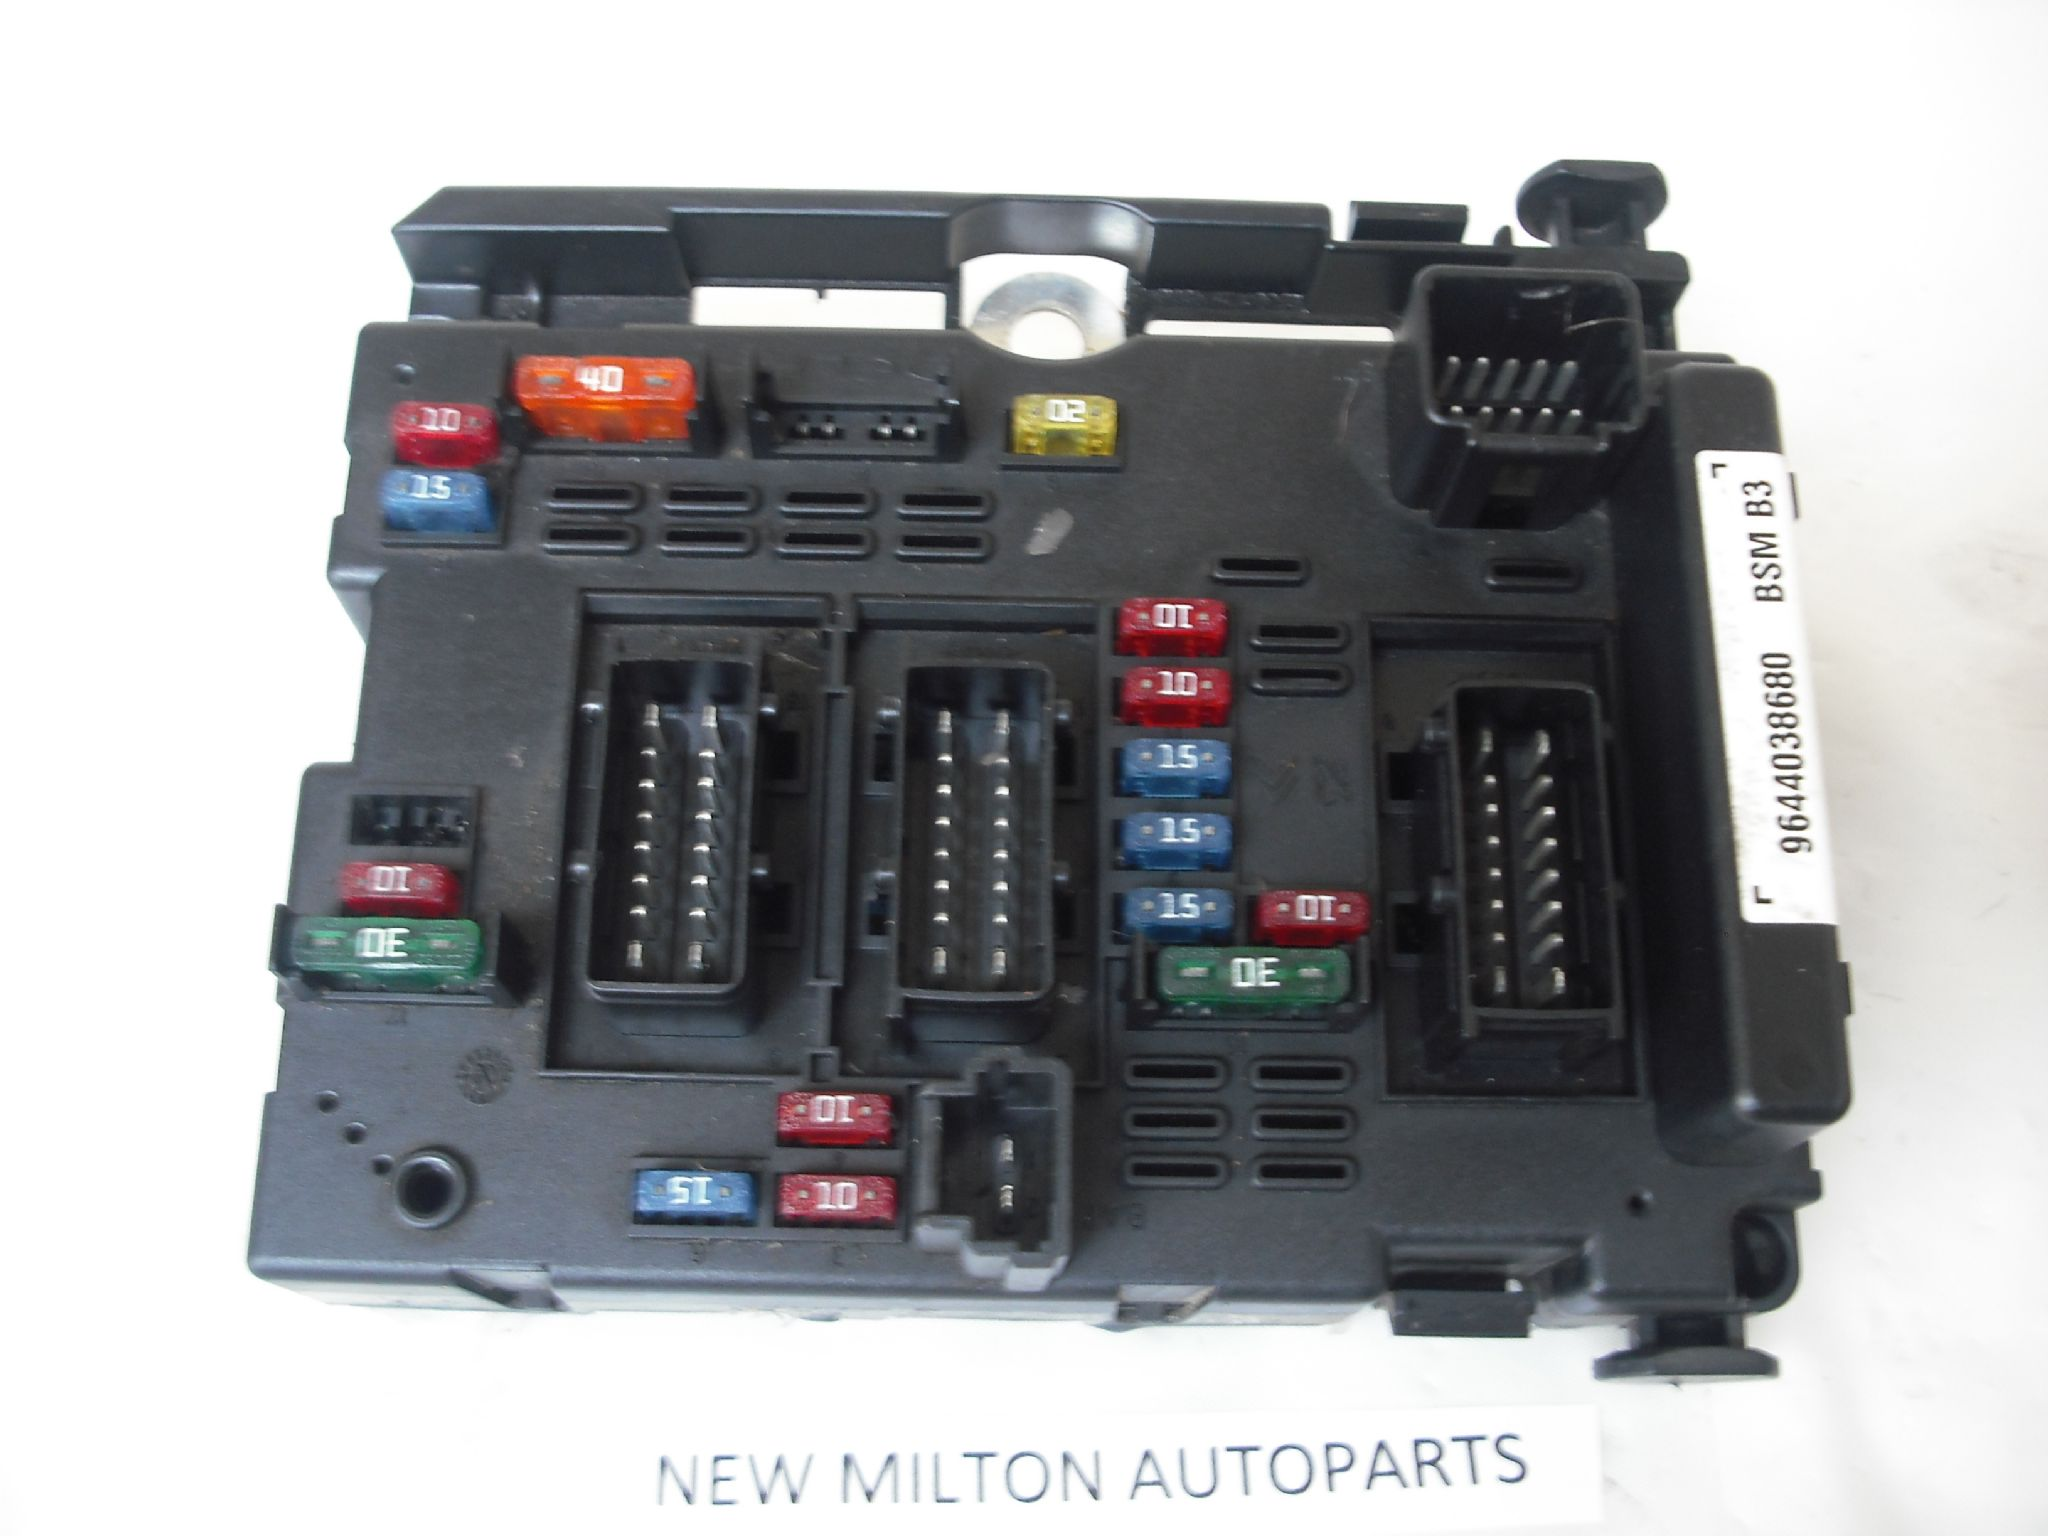 peugeot 307 partner citroen berlingo fuse box controller 9644038680 bsm b3 ........................sorry out of stock 5843 p peugeot 307 partner citroen berlingo fuse box controller citroen berlingo 2003 fuse box at n-0.co